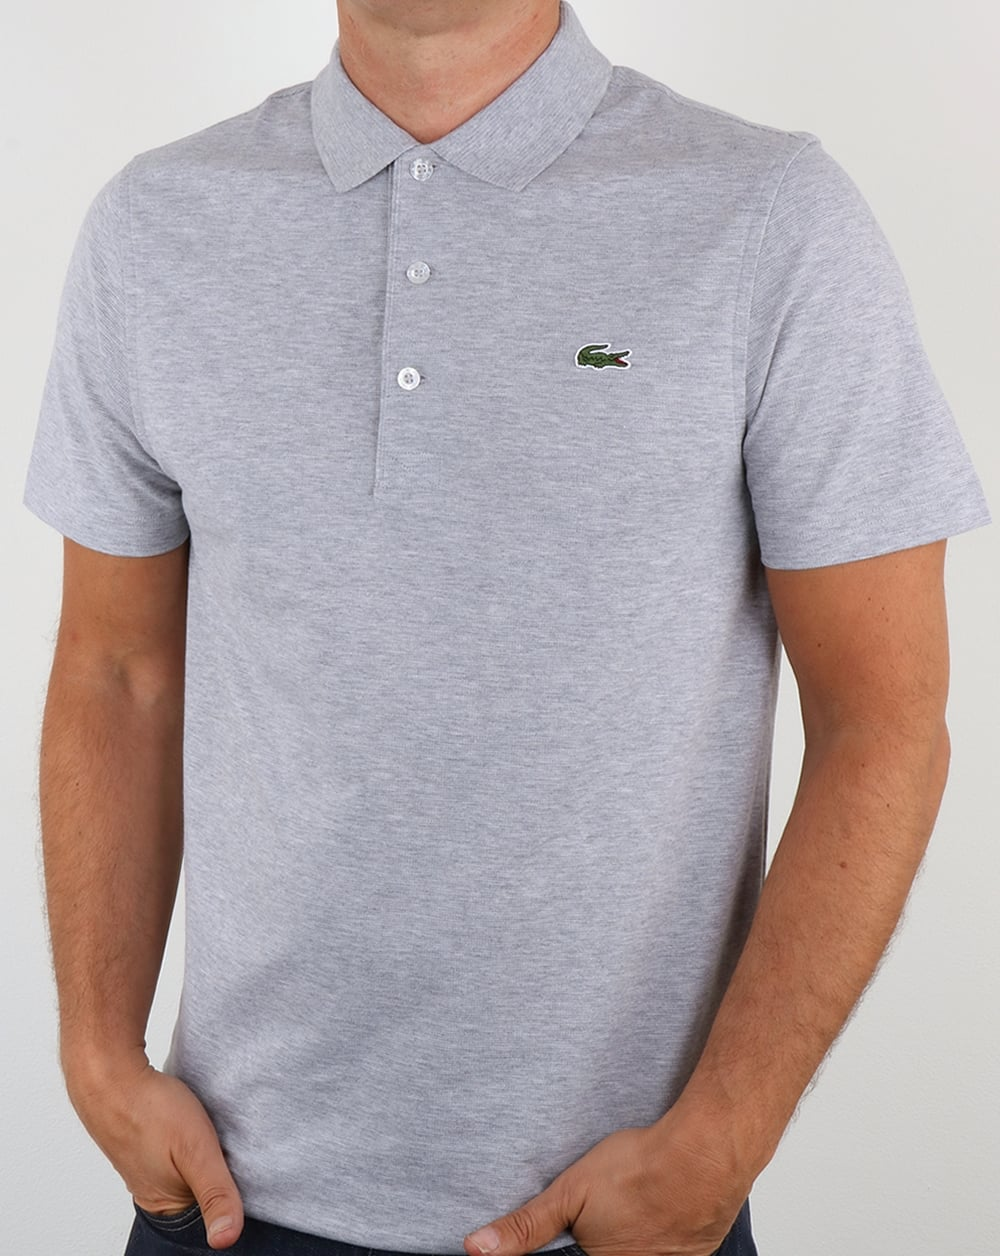 Lacoste ultra lightweight knit polo shirt silver chine men 39 s for Order company polo shirts